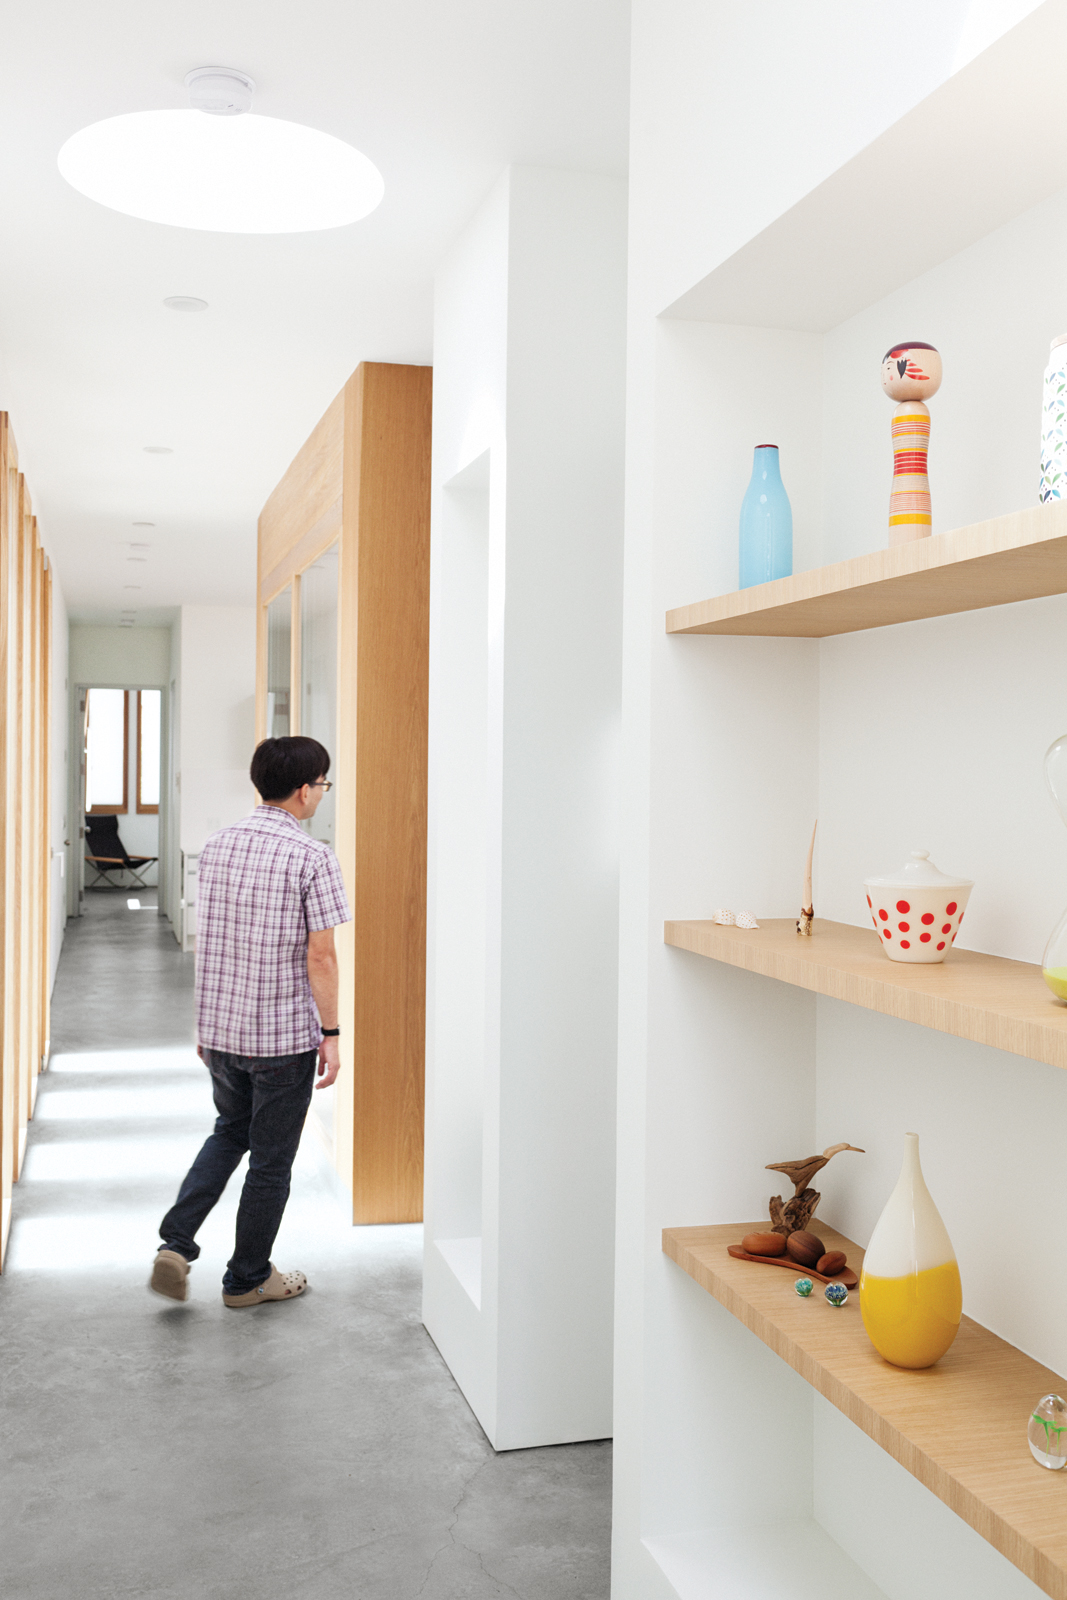 Built-in wooden shelving units